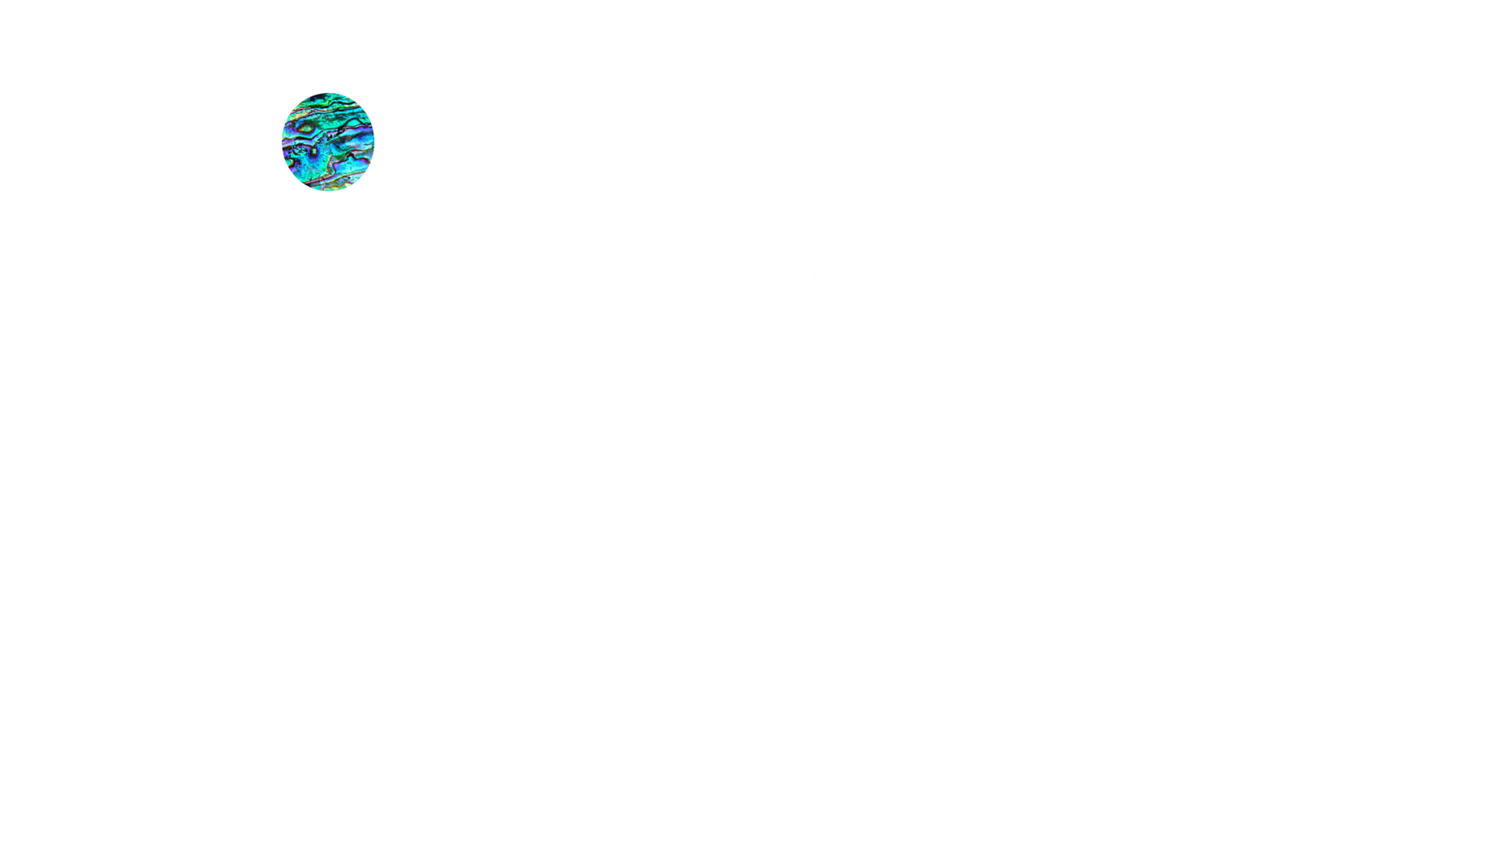 OYSTER Marketing Agency